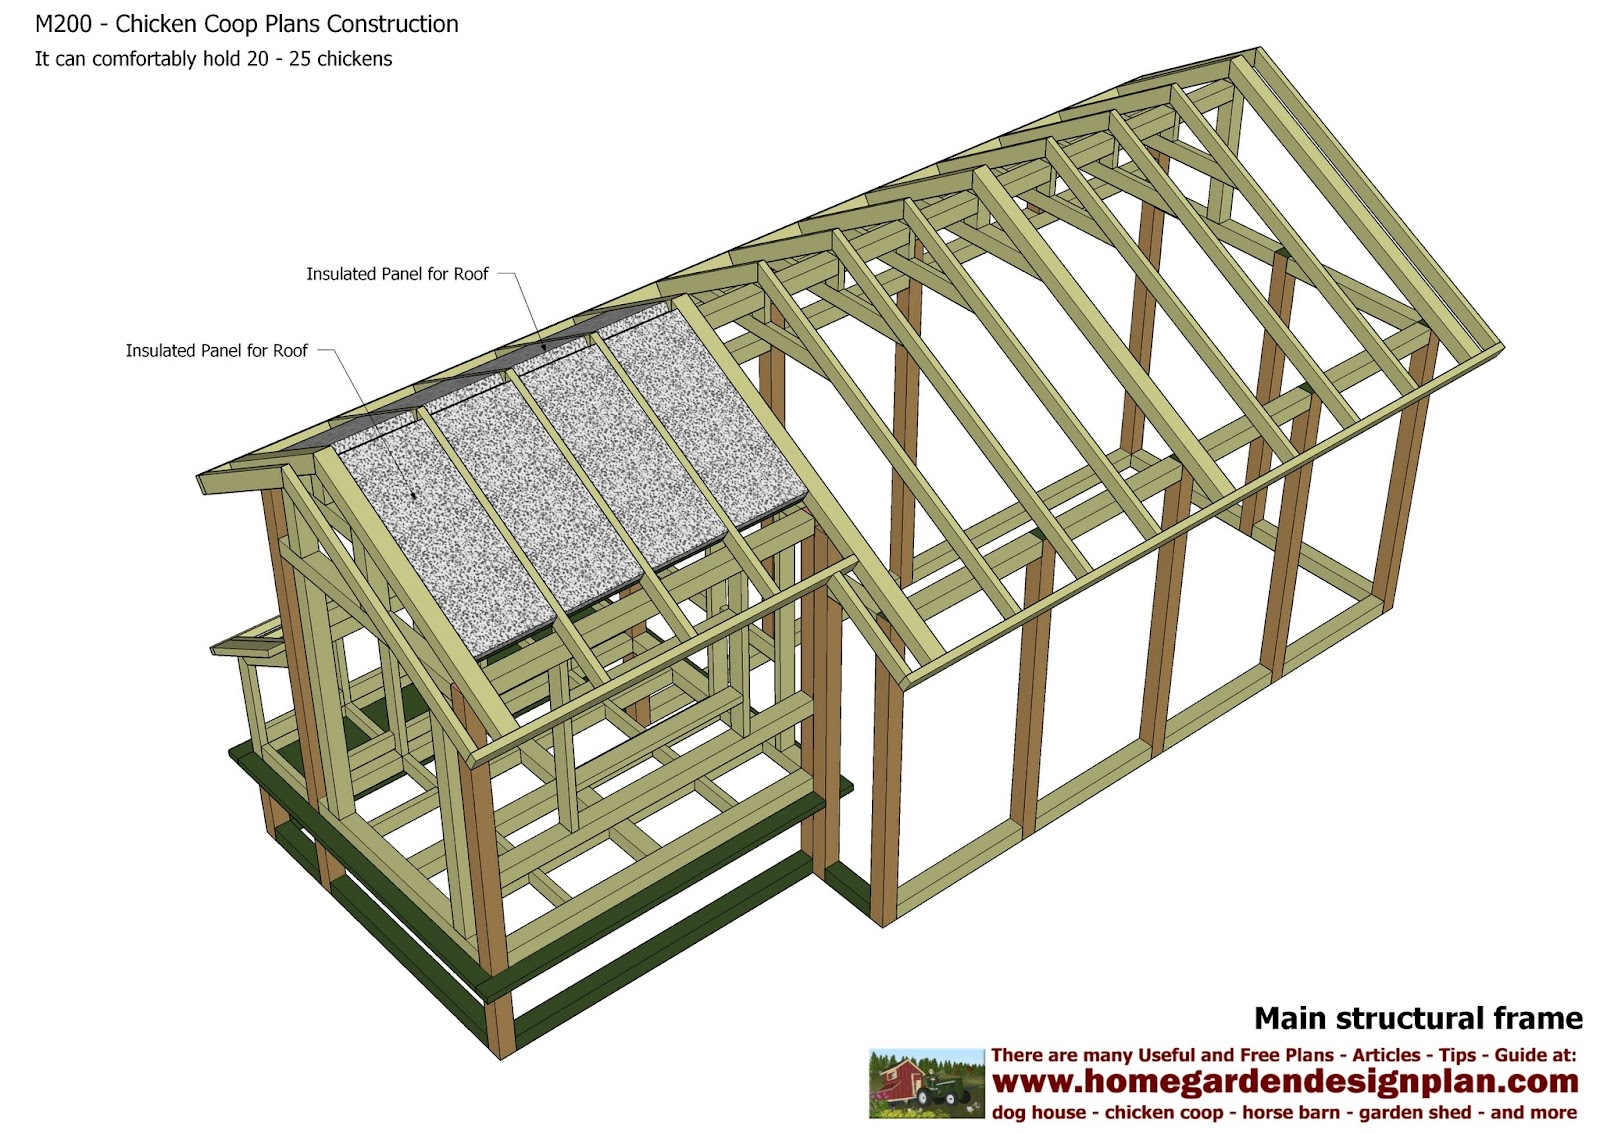 Genaha guide to get chicken coop plans m200 for Chicken coop plans free pdf